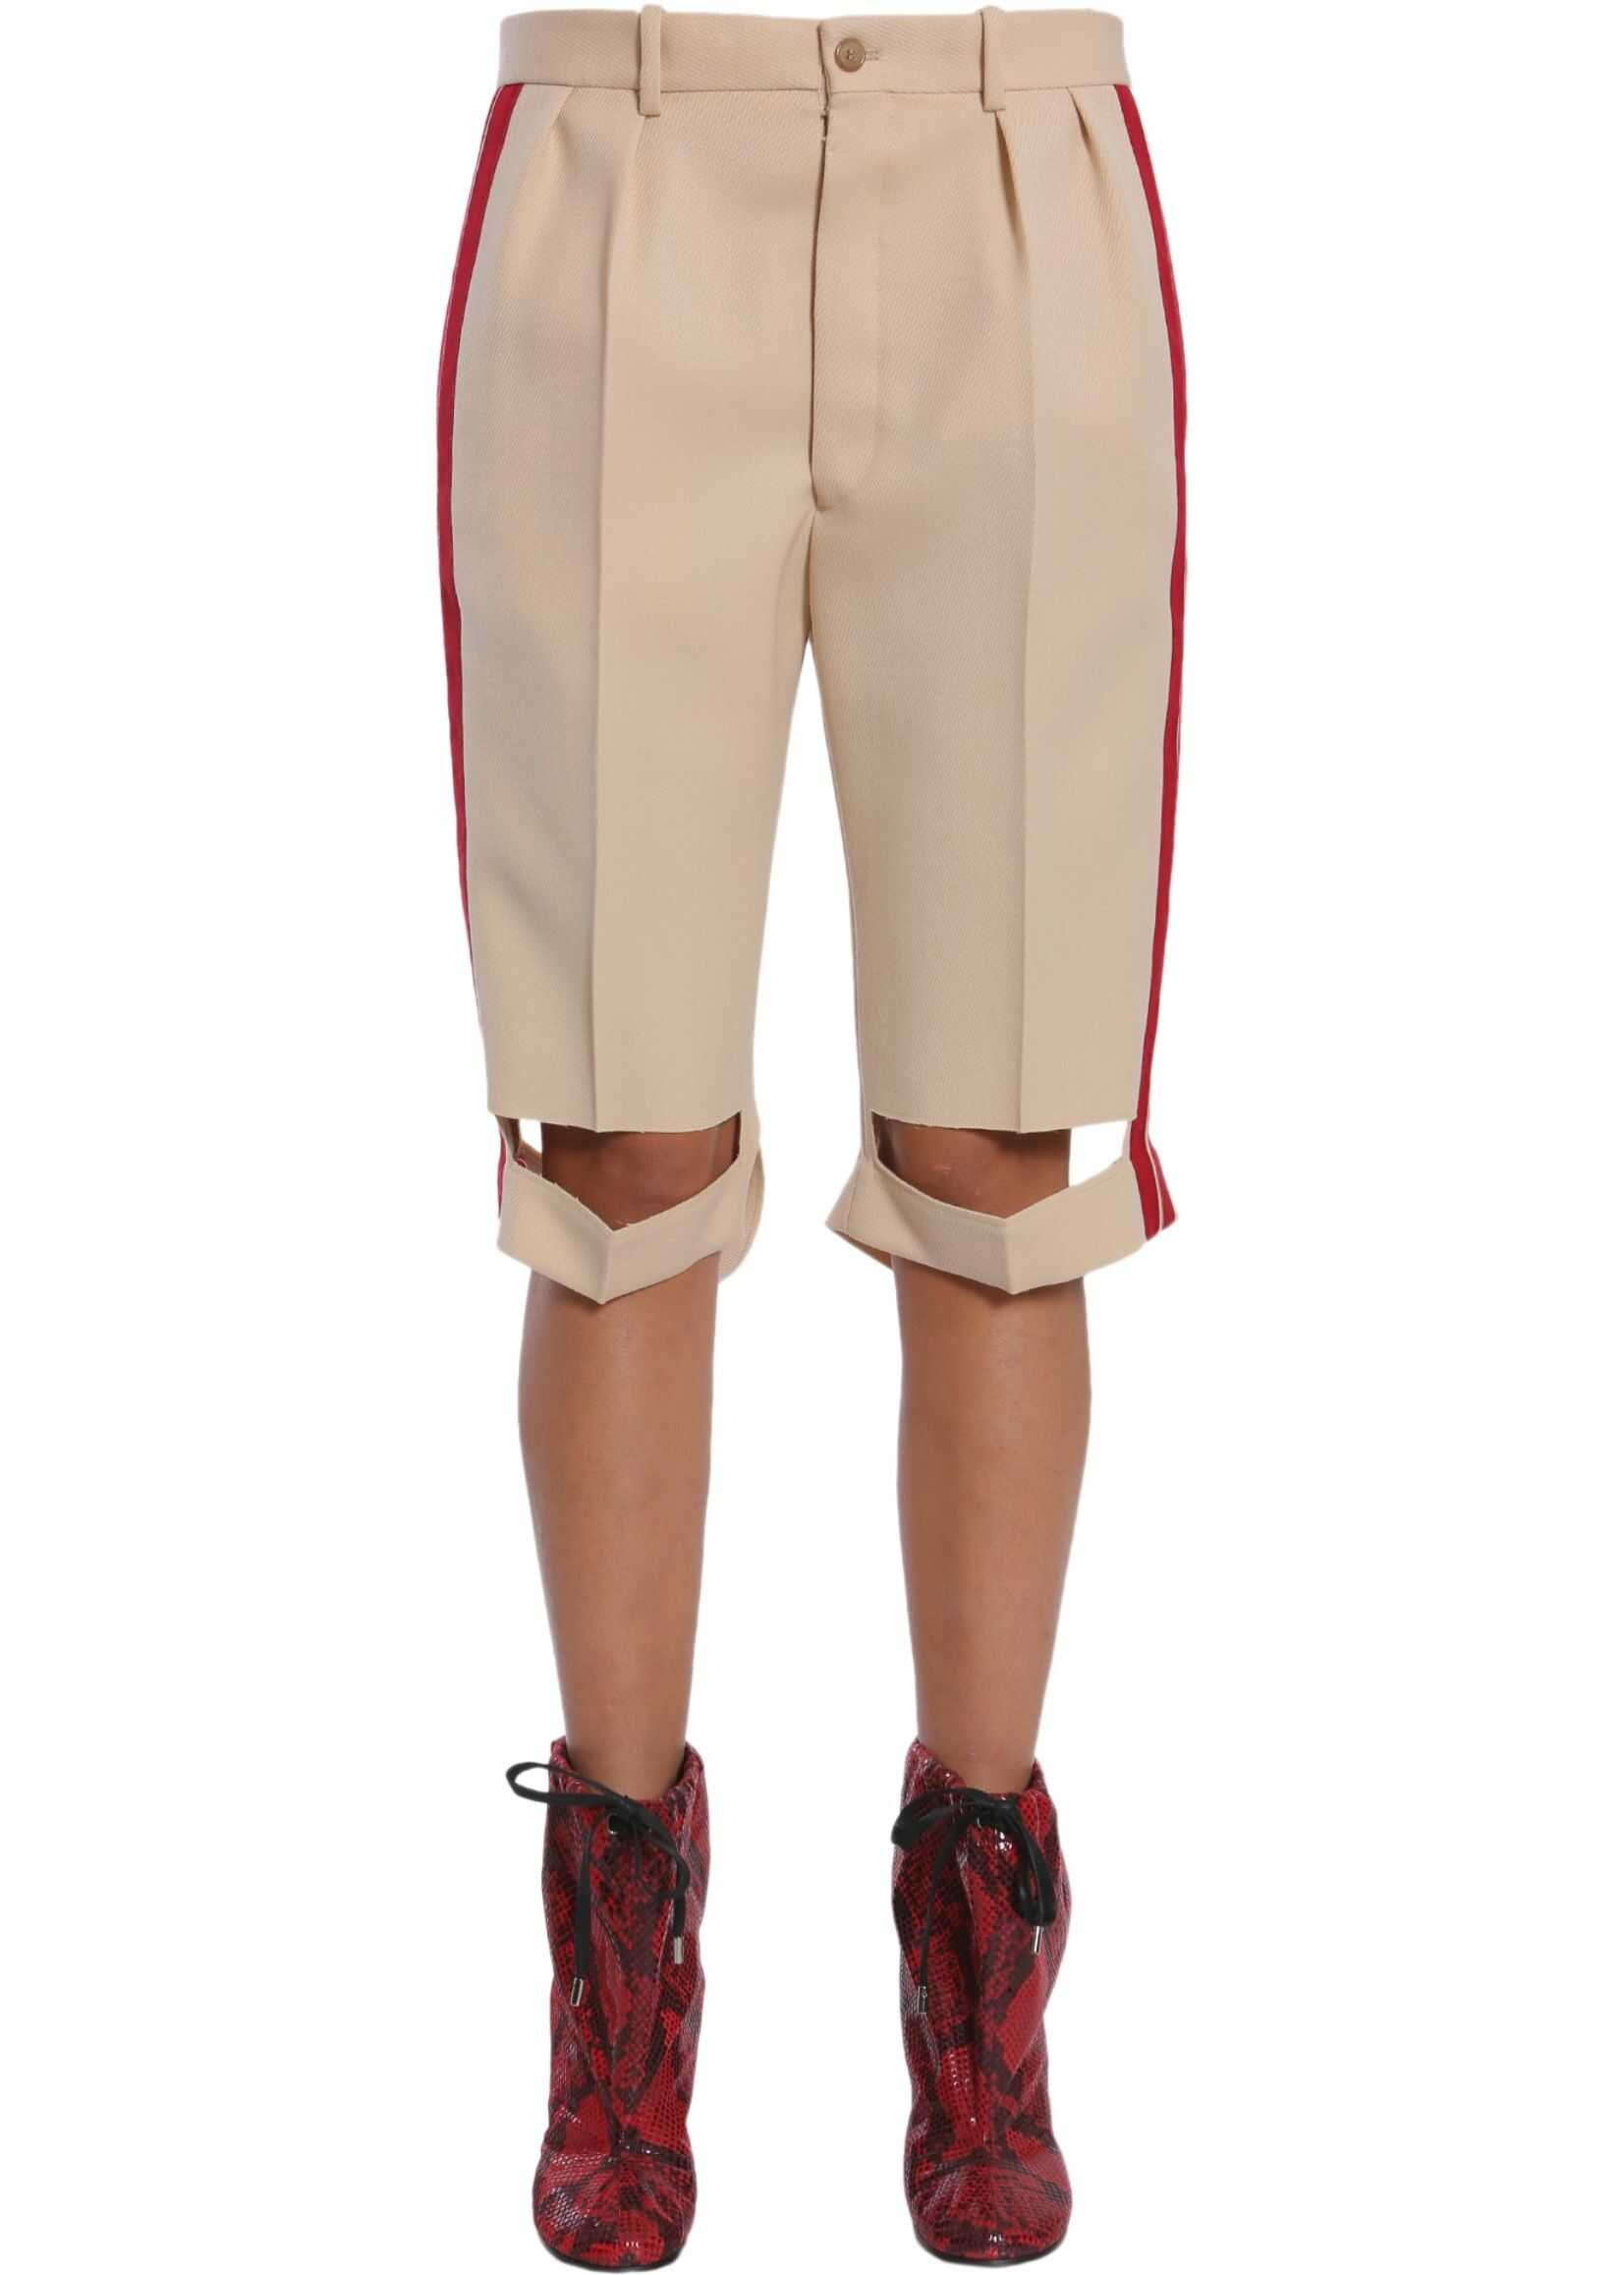 Bermuda Shorts With Side Bands